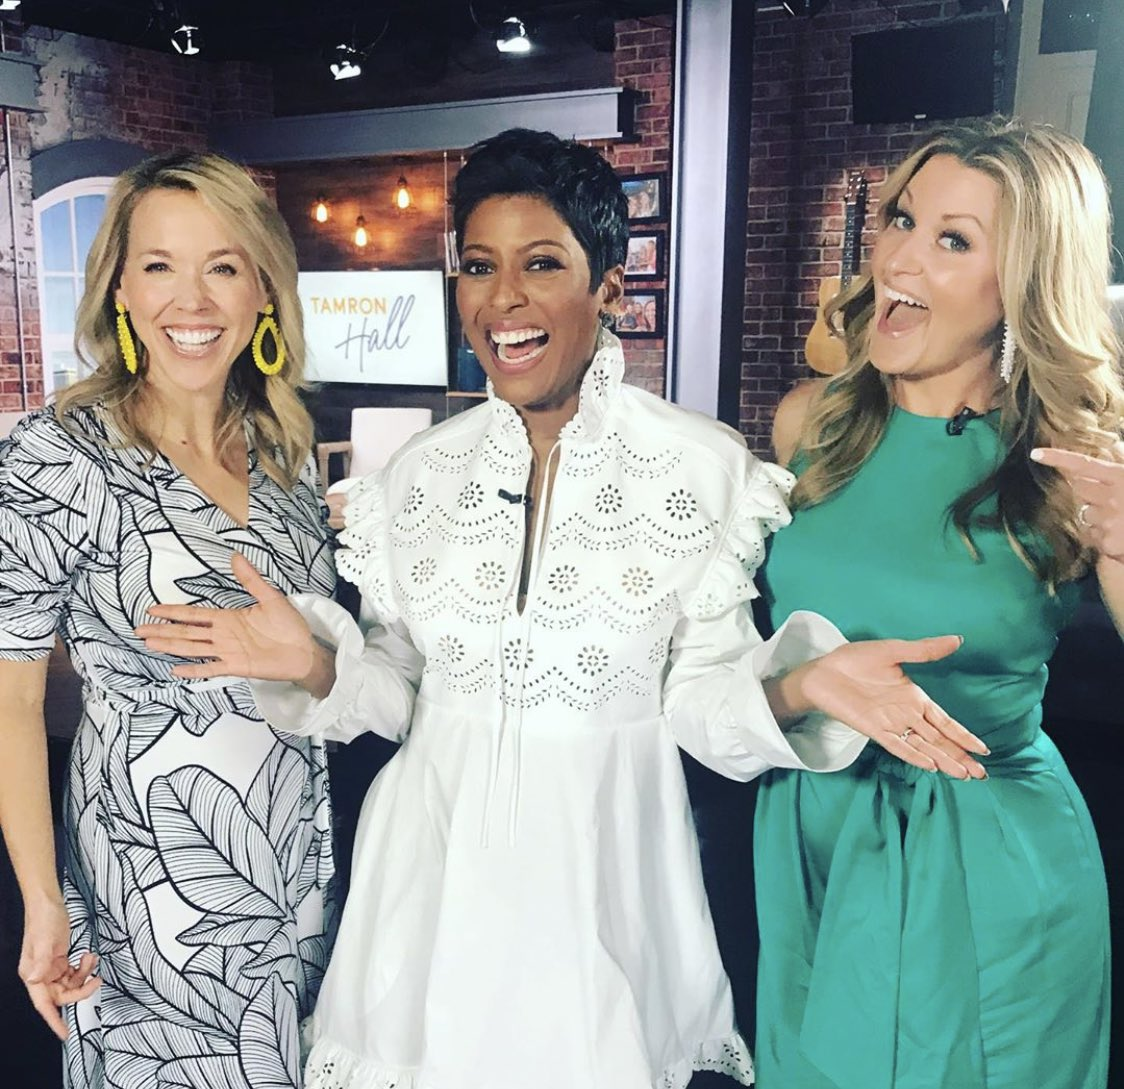 Is #Sunday the end of the week or the beginning? Doesn't matter when the week included hanging out with @carolesullivan and @thekellysutton in Nashville. My daytime tv fam @wsmvtv Ch 4. @tamronhallshow Sept 9th #daytimetv #tamronhallshow